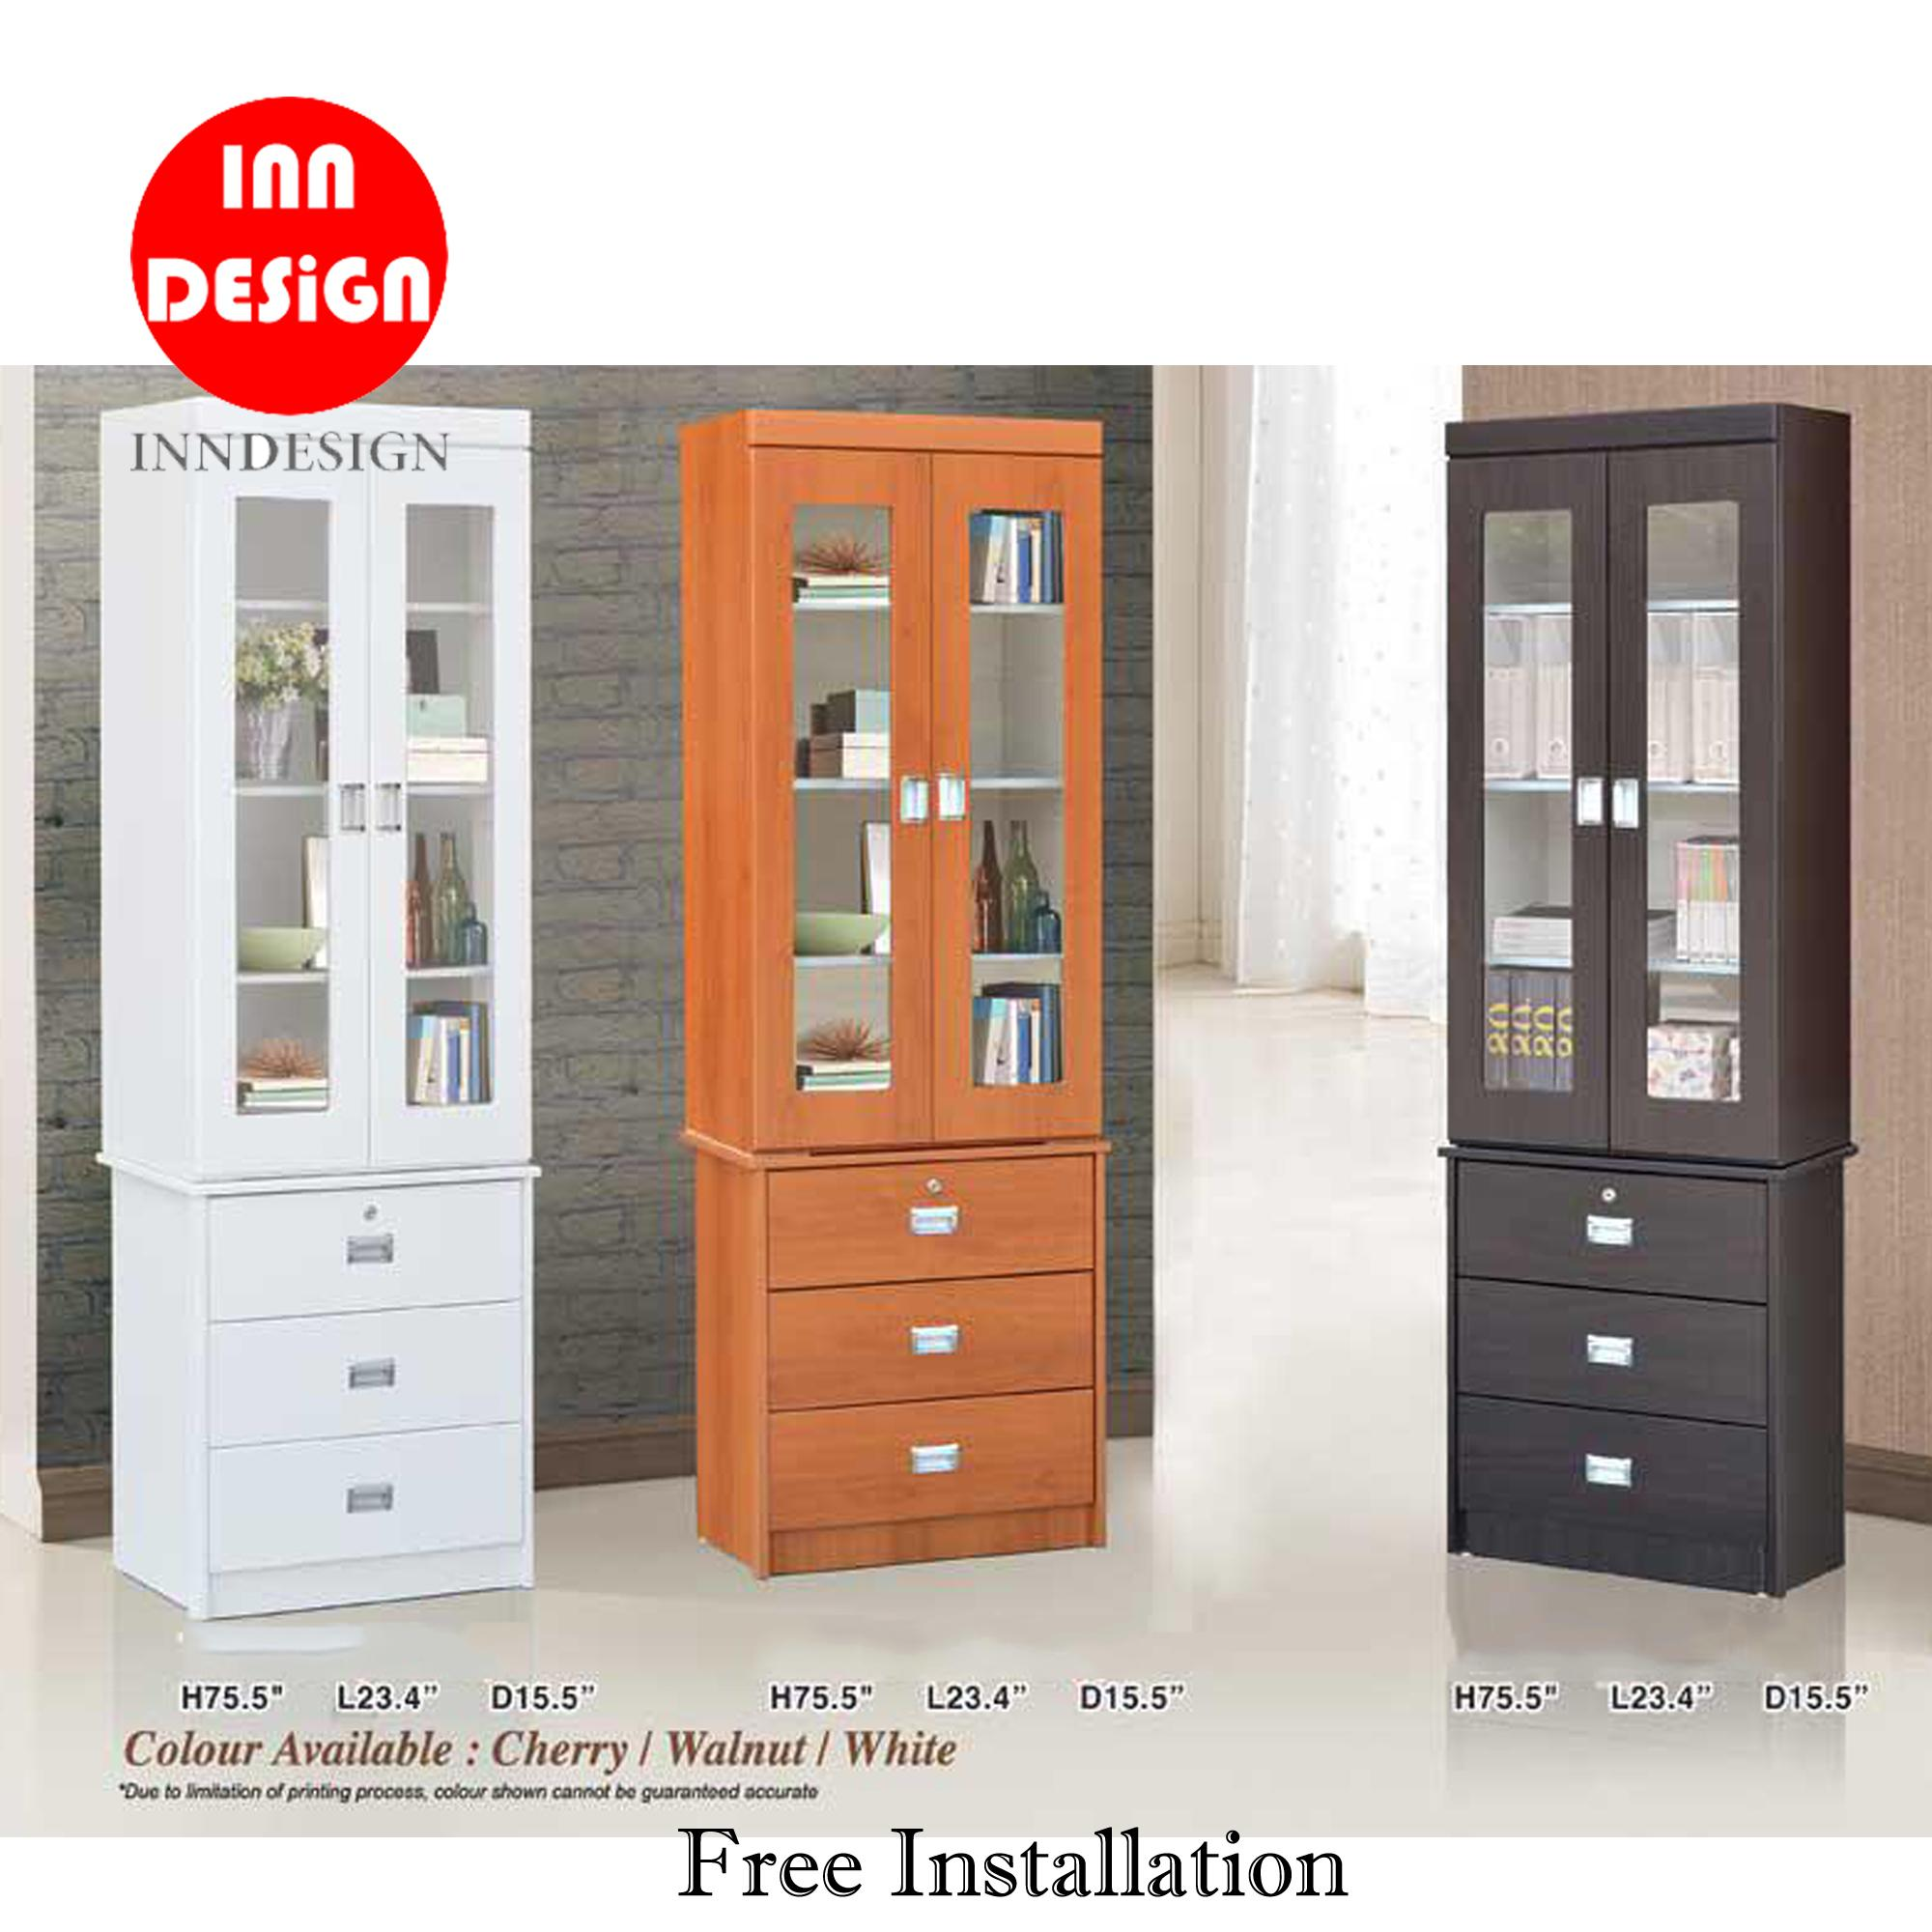 Yuana Bookshelf / Display Bookshelf With Drawer (Free Delivery and Installation)